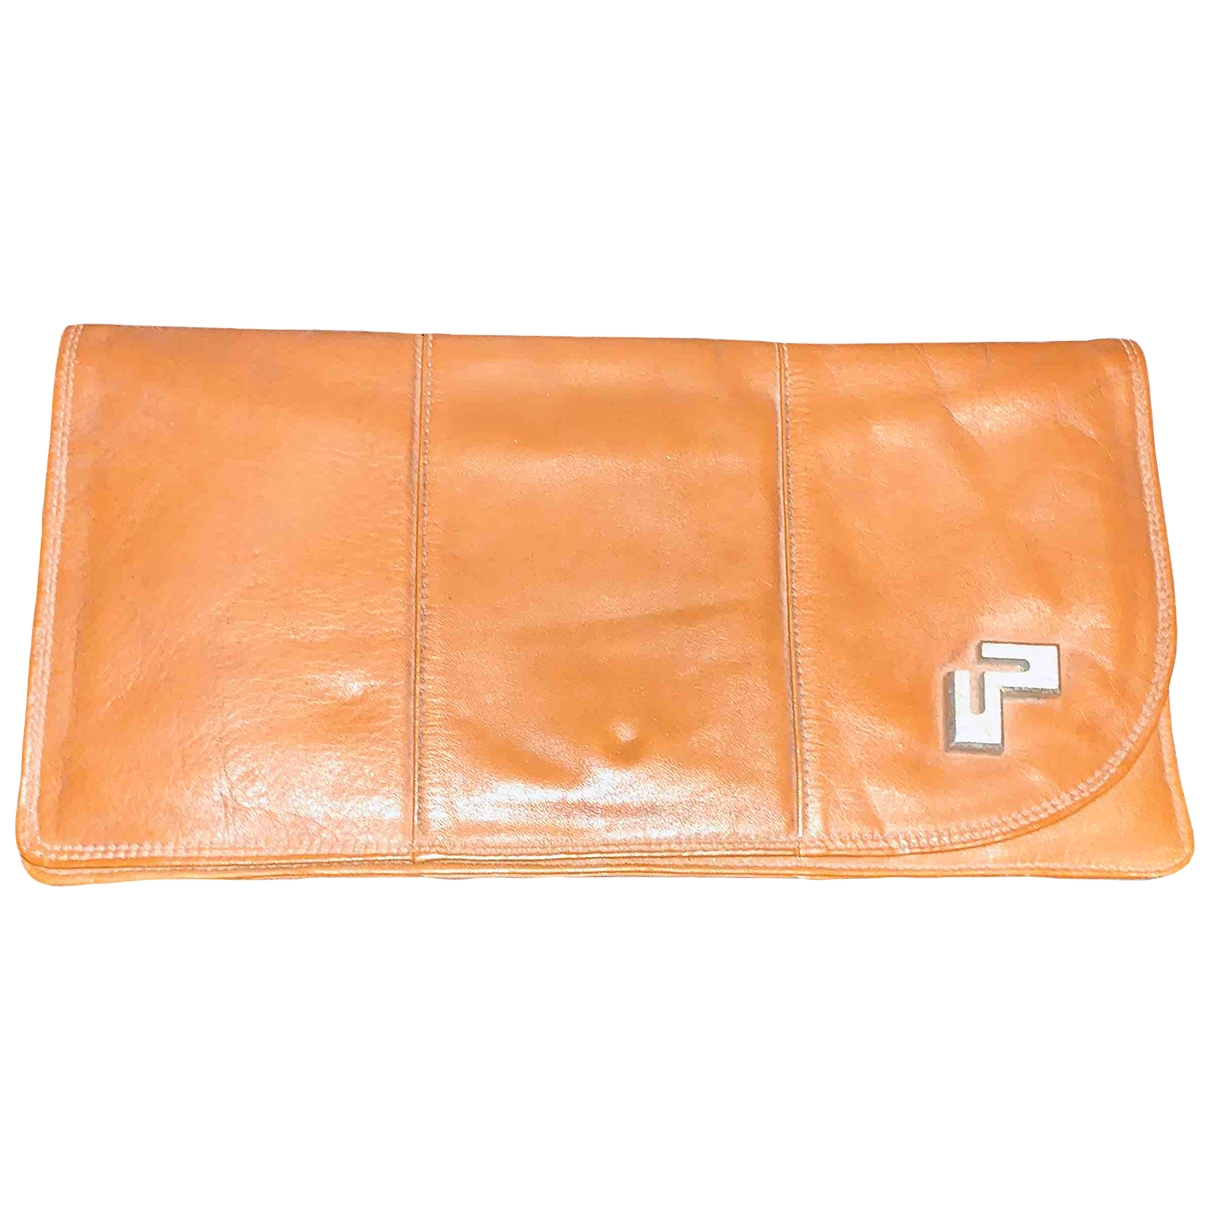 Non Signé / Unsigned \N Camel Leather Clutch bag for Women \N